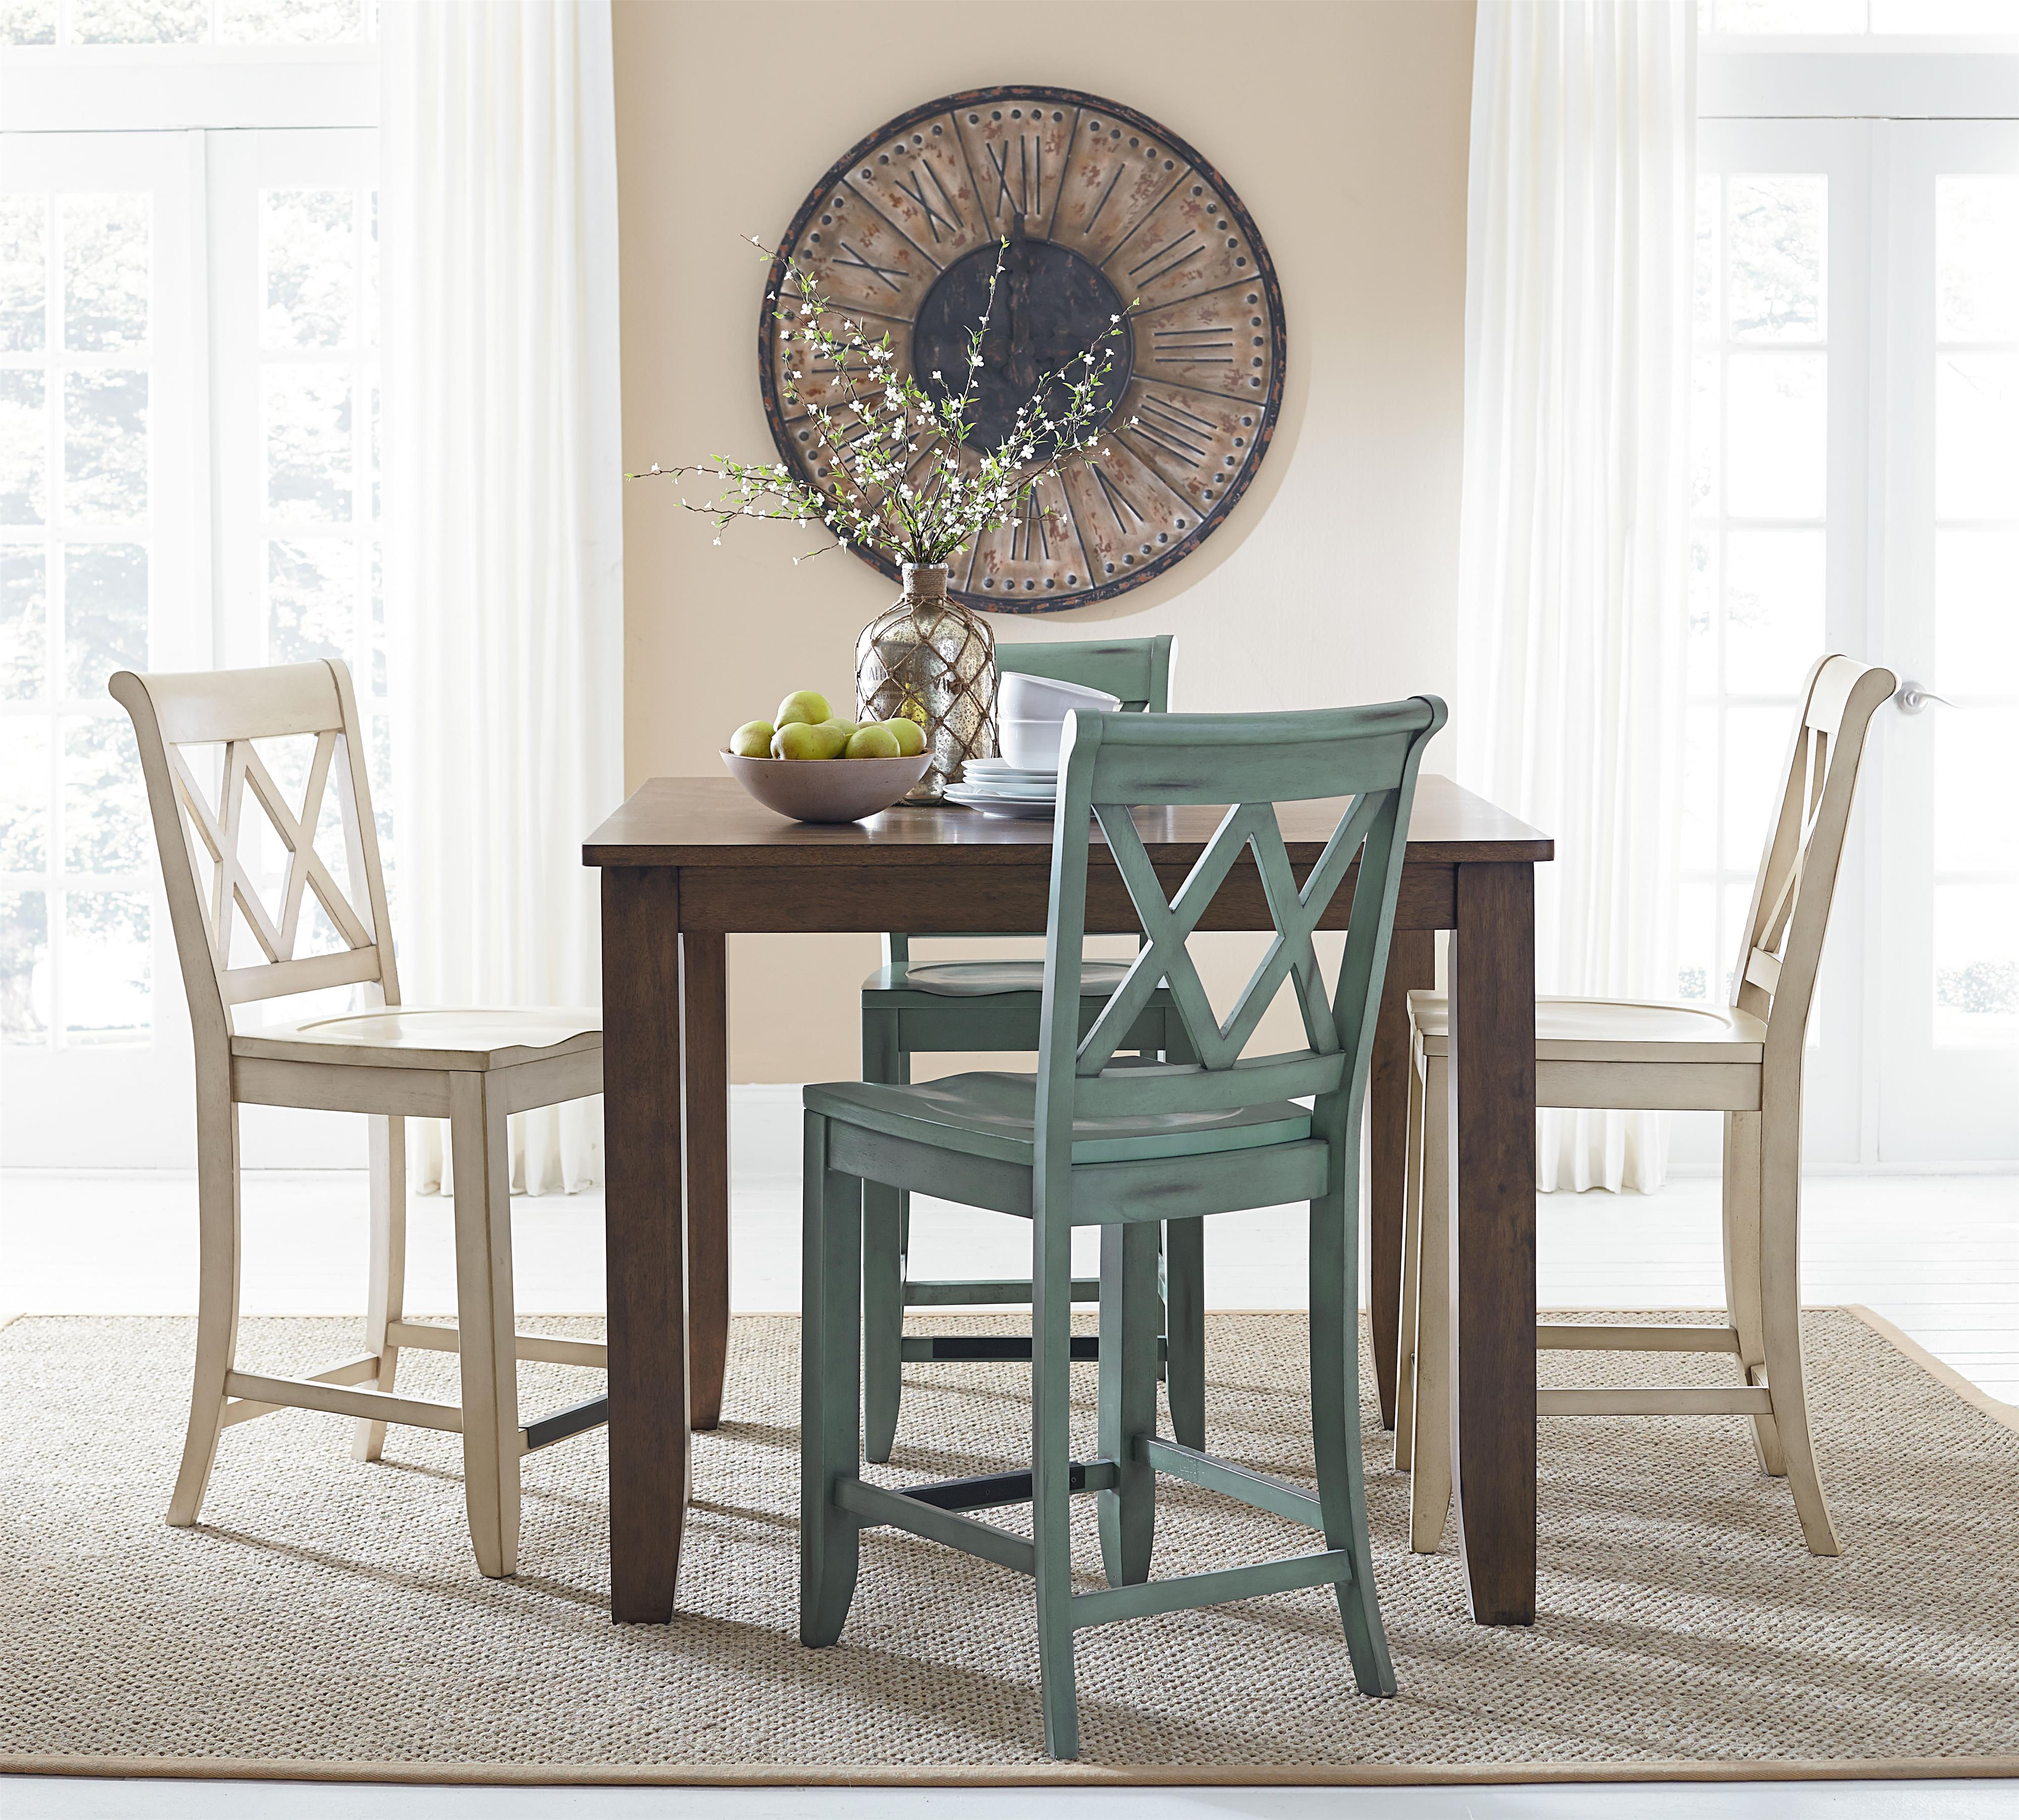 Standard Furniture Dining Room Sets: Standard Furniture Vintage Counter Height Dining Set With